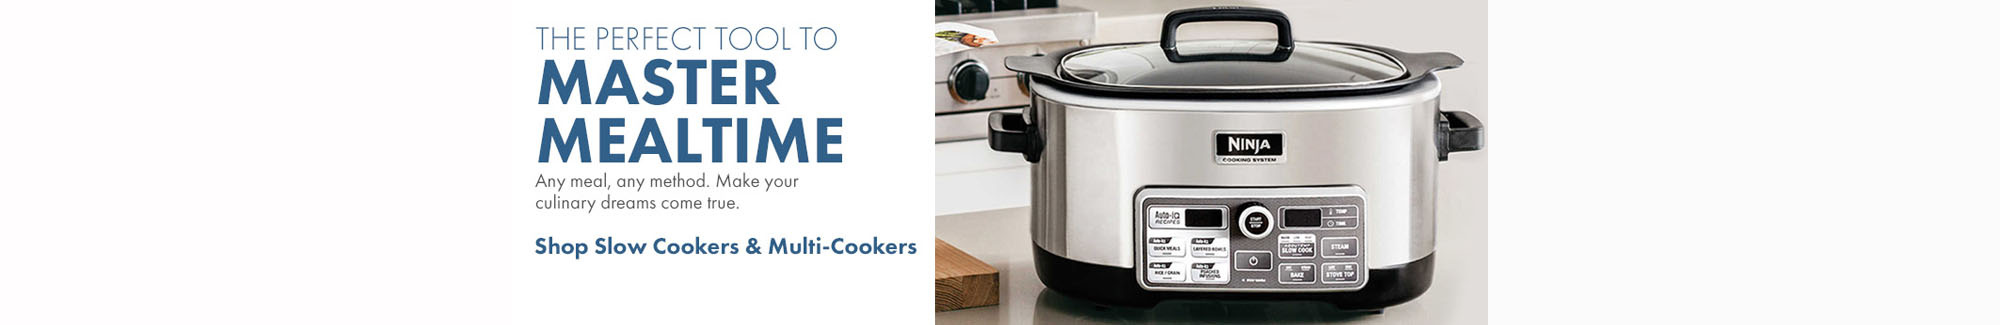 Shop Slow Cookers & Multi Cookers